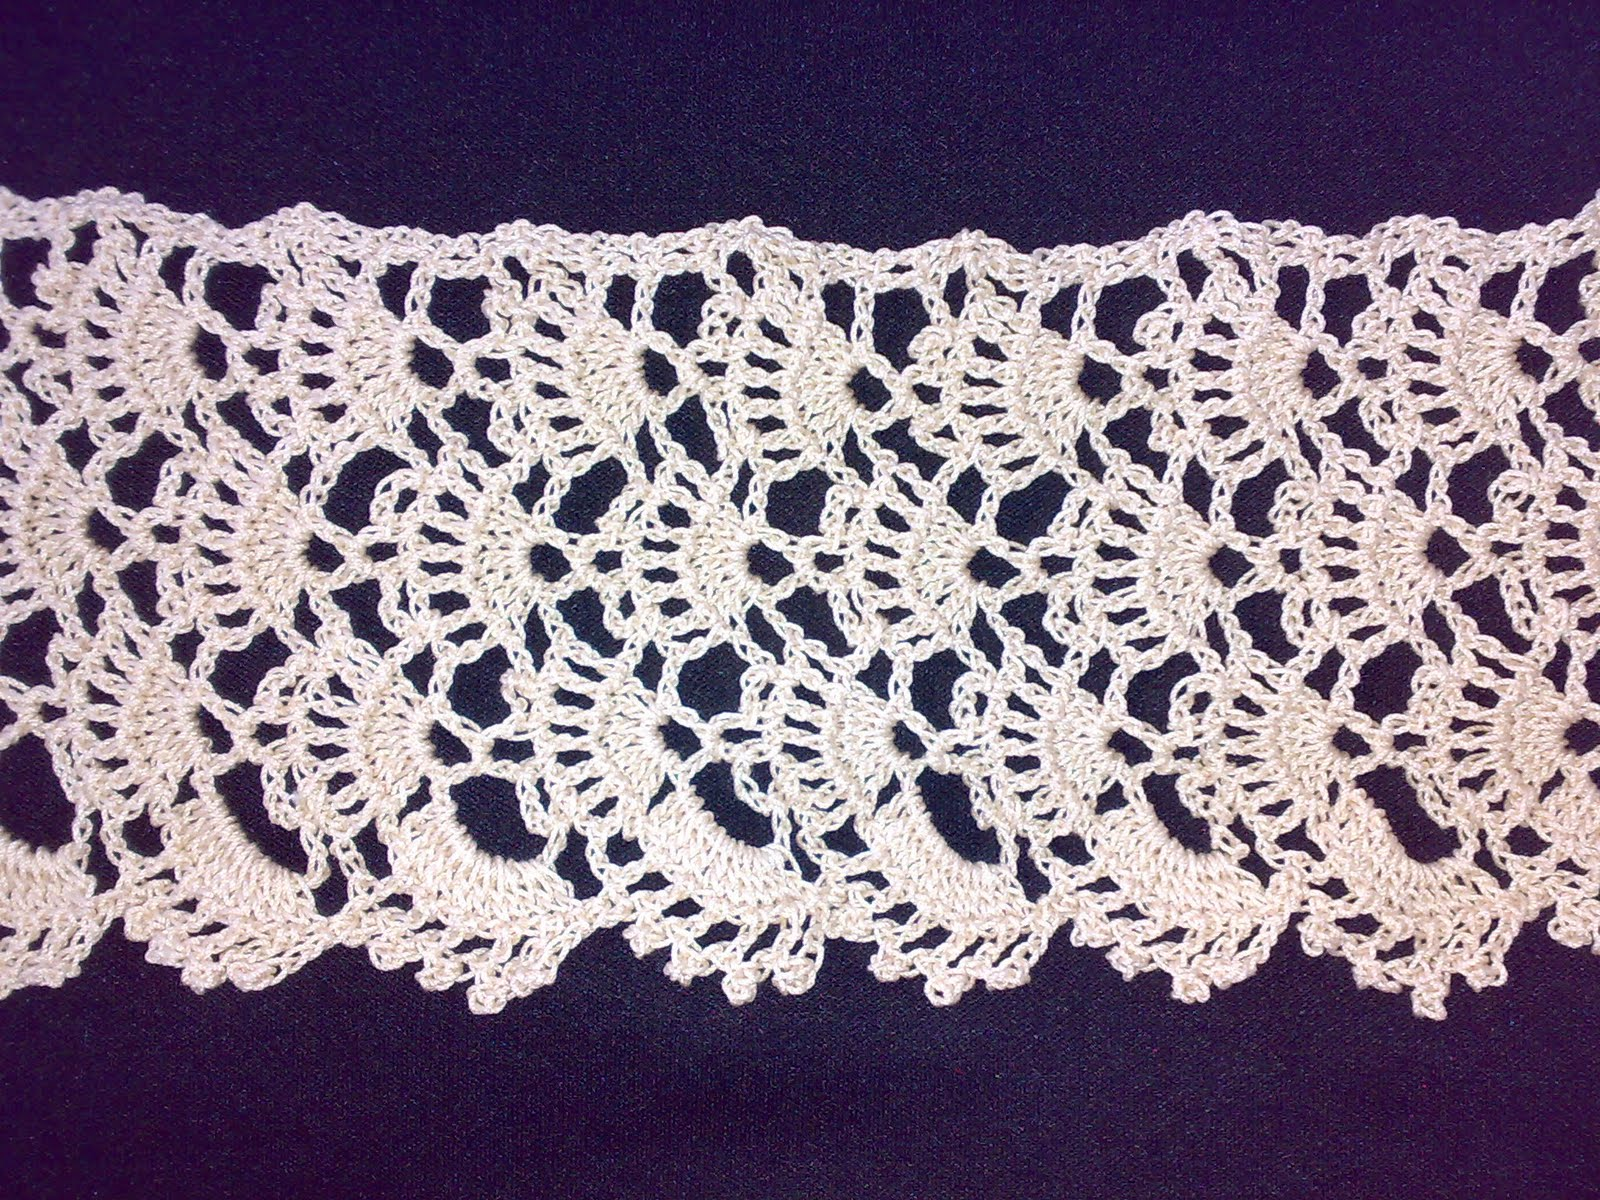 Theres More to Life than Time Permits: A Crochet Lace